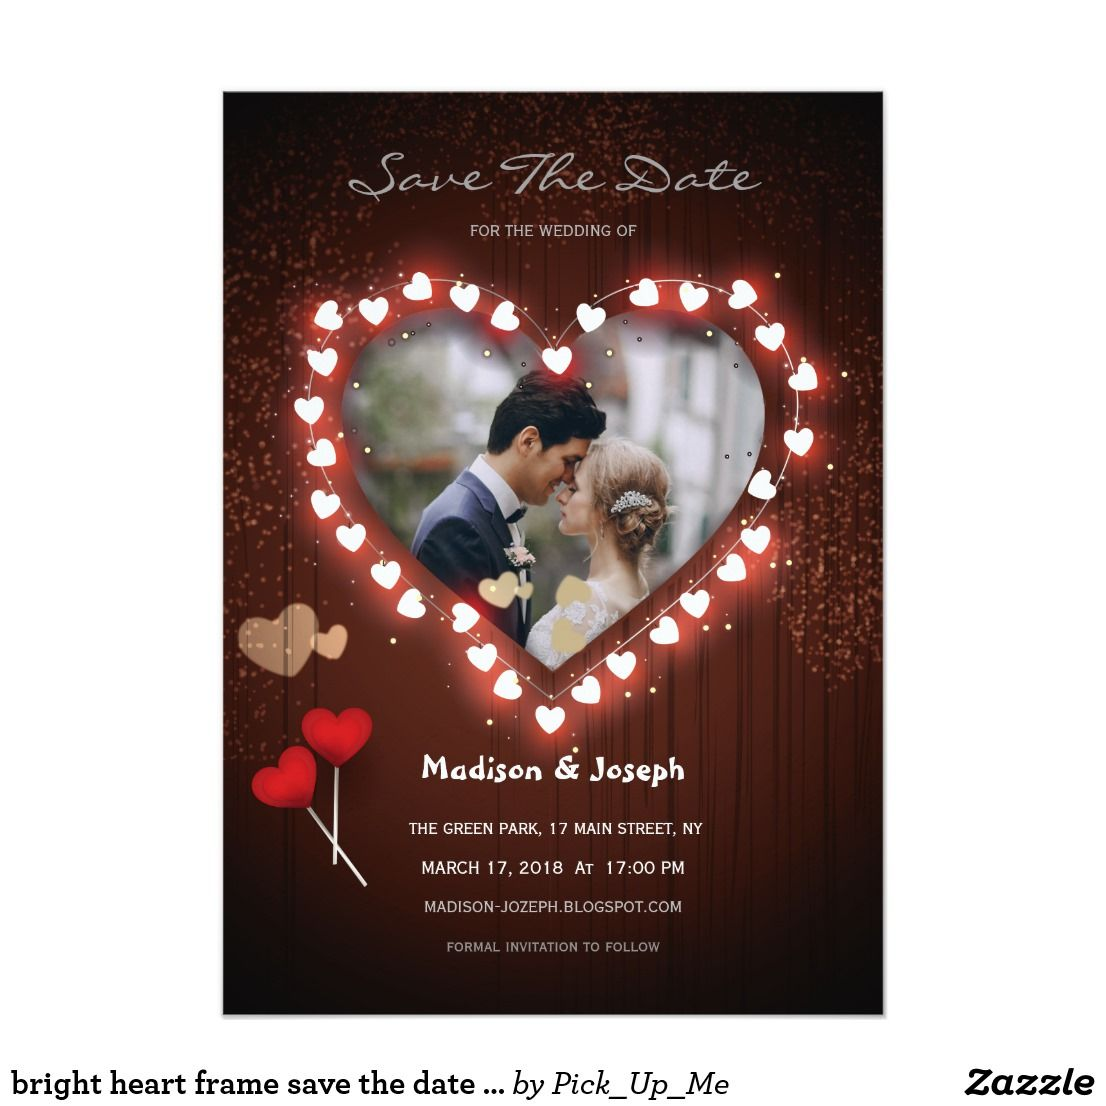 bright heart frame save the date invitation card | Other Wedding ...